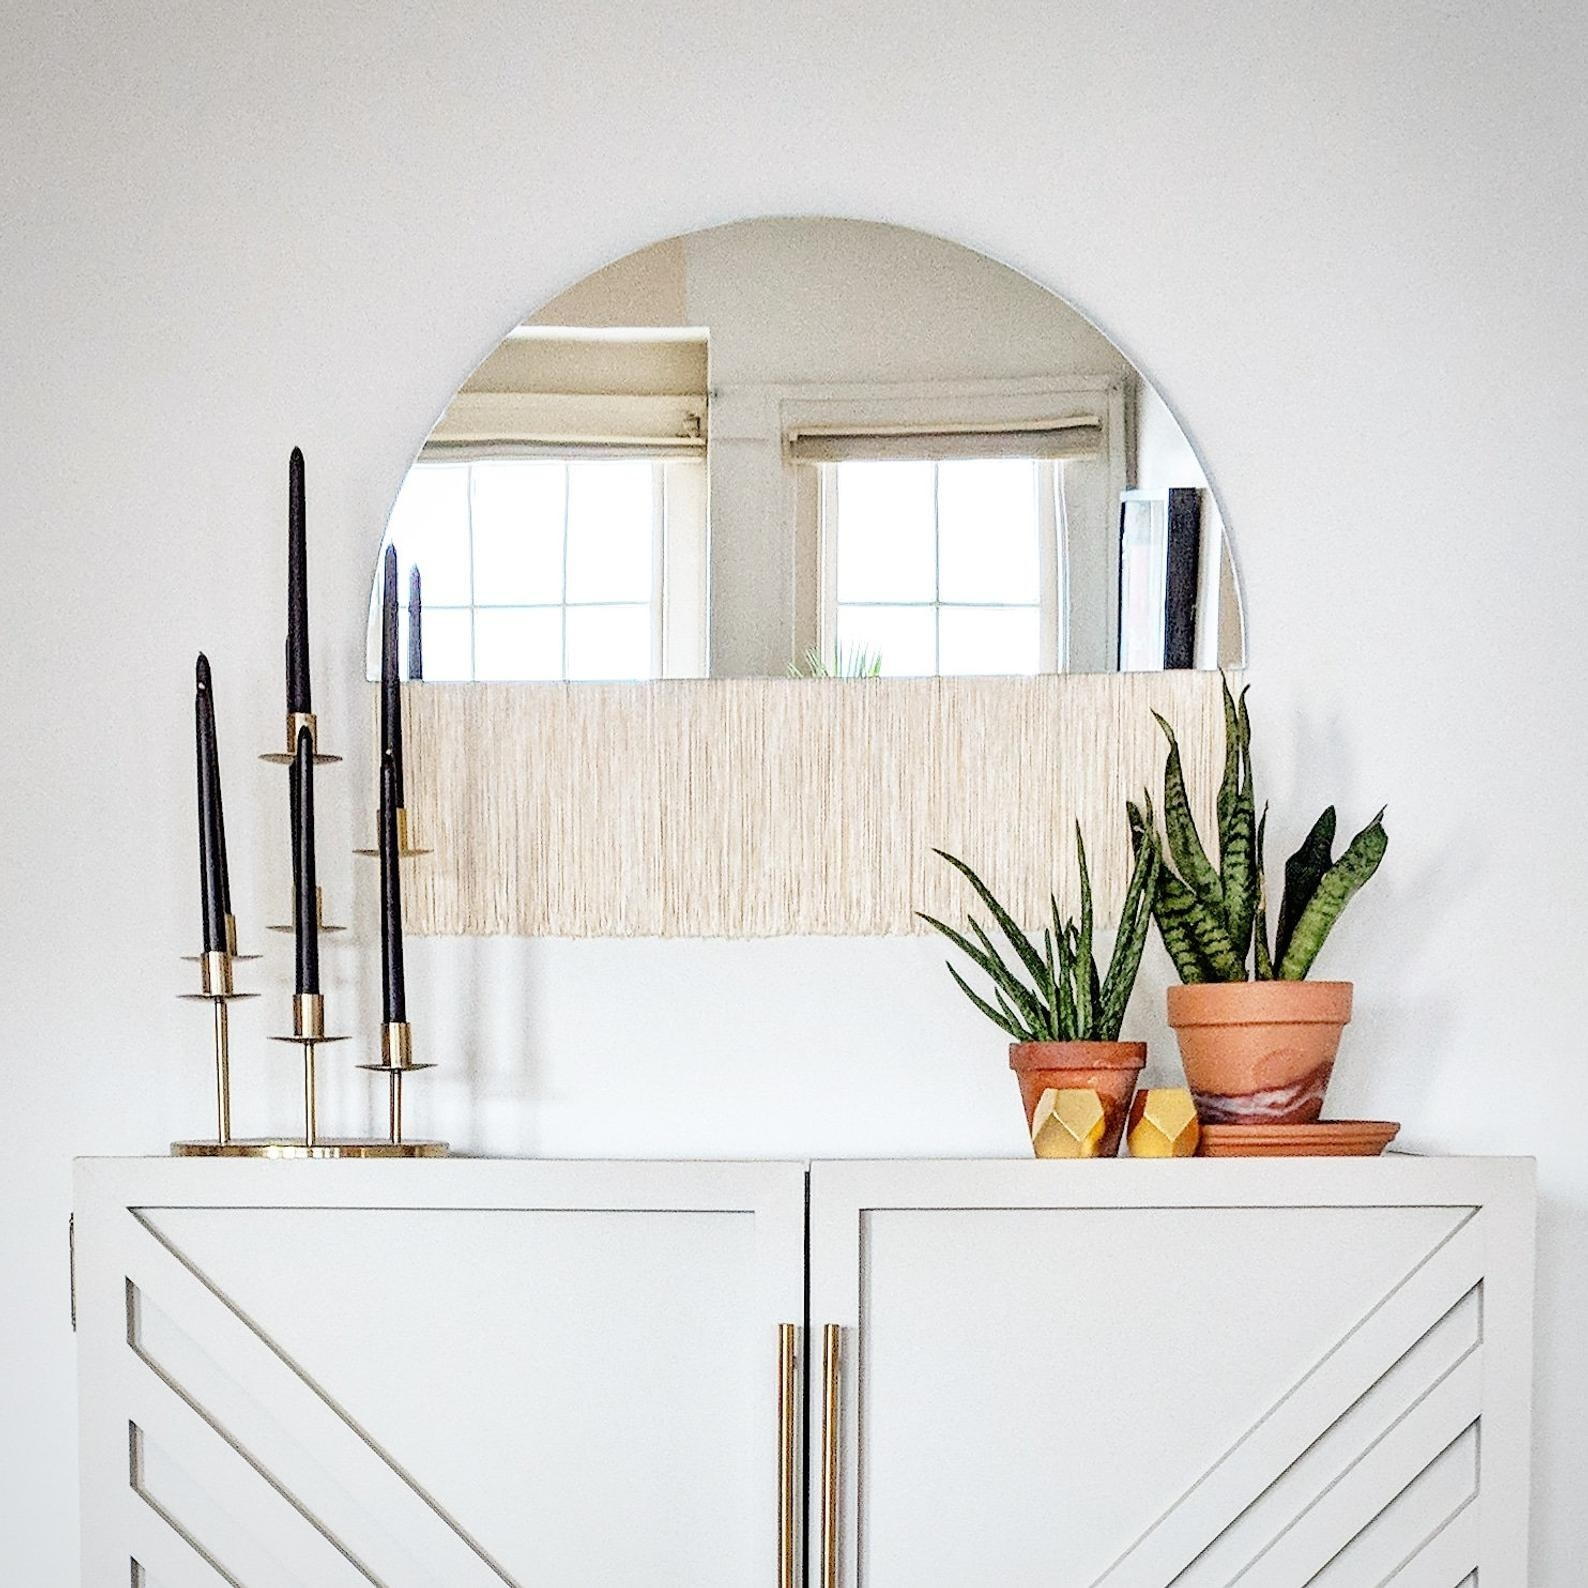 The fringe mirror hanging on a wall